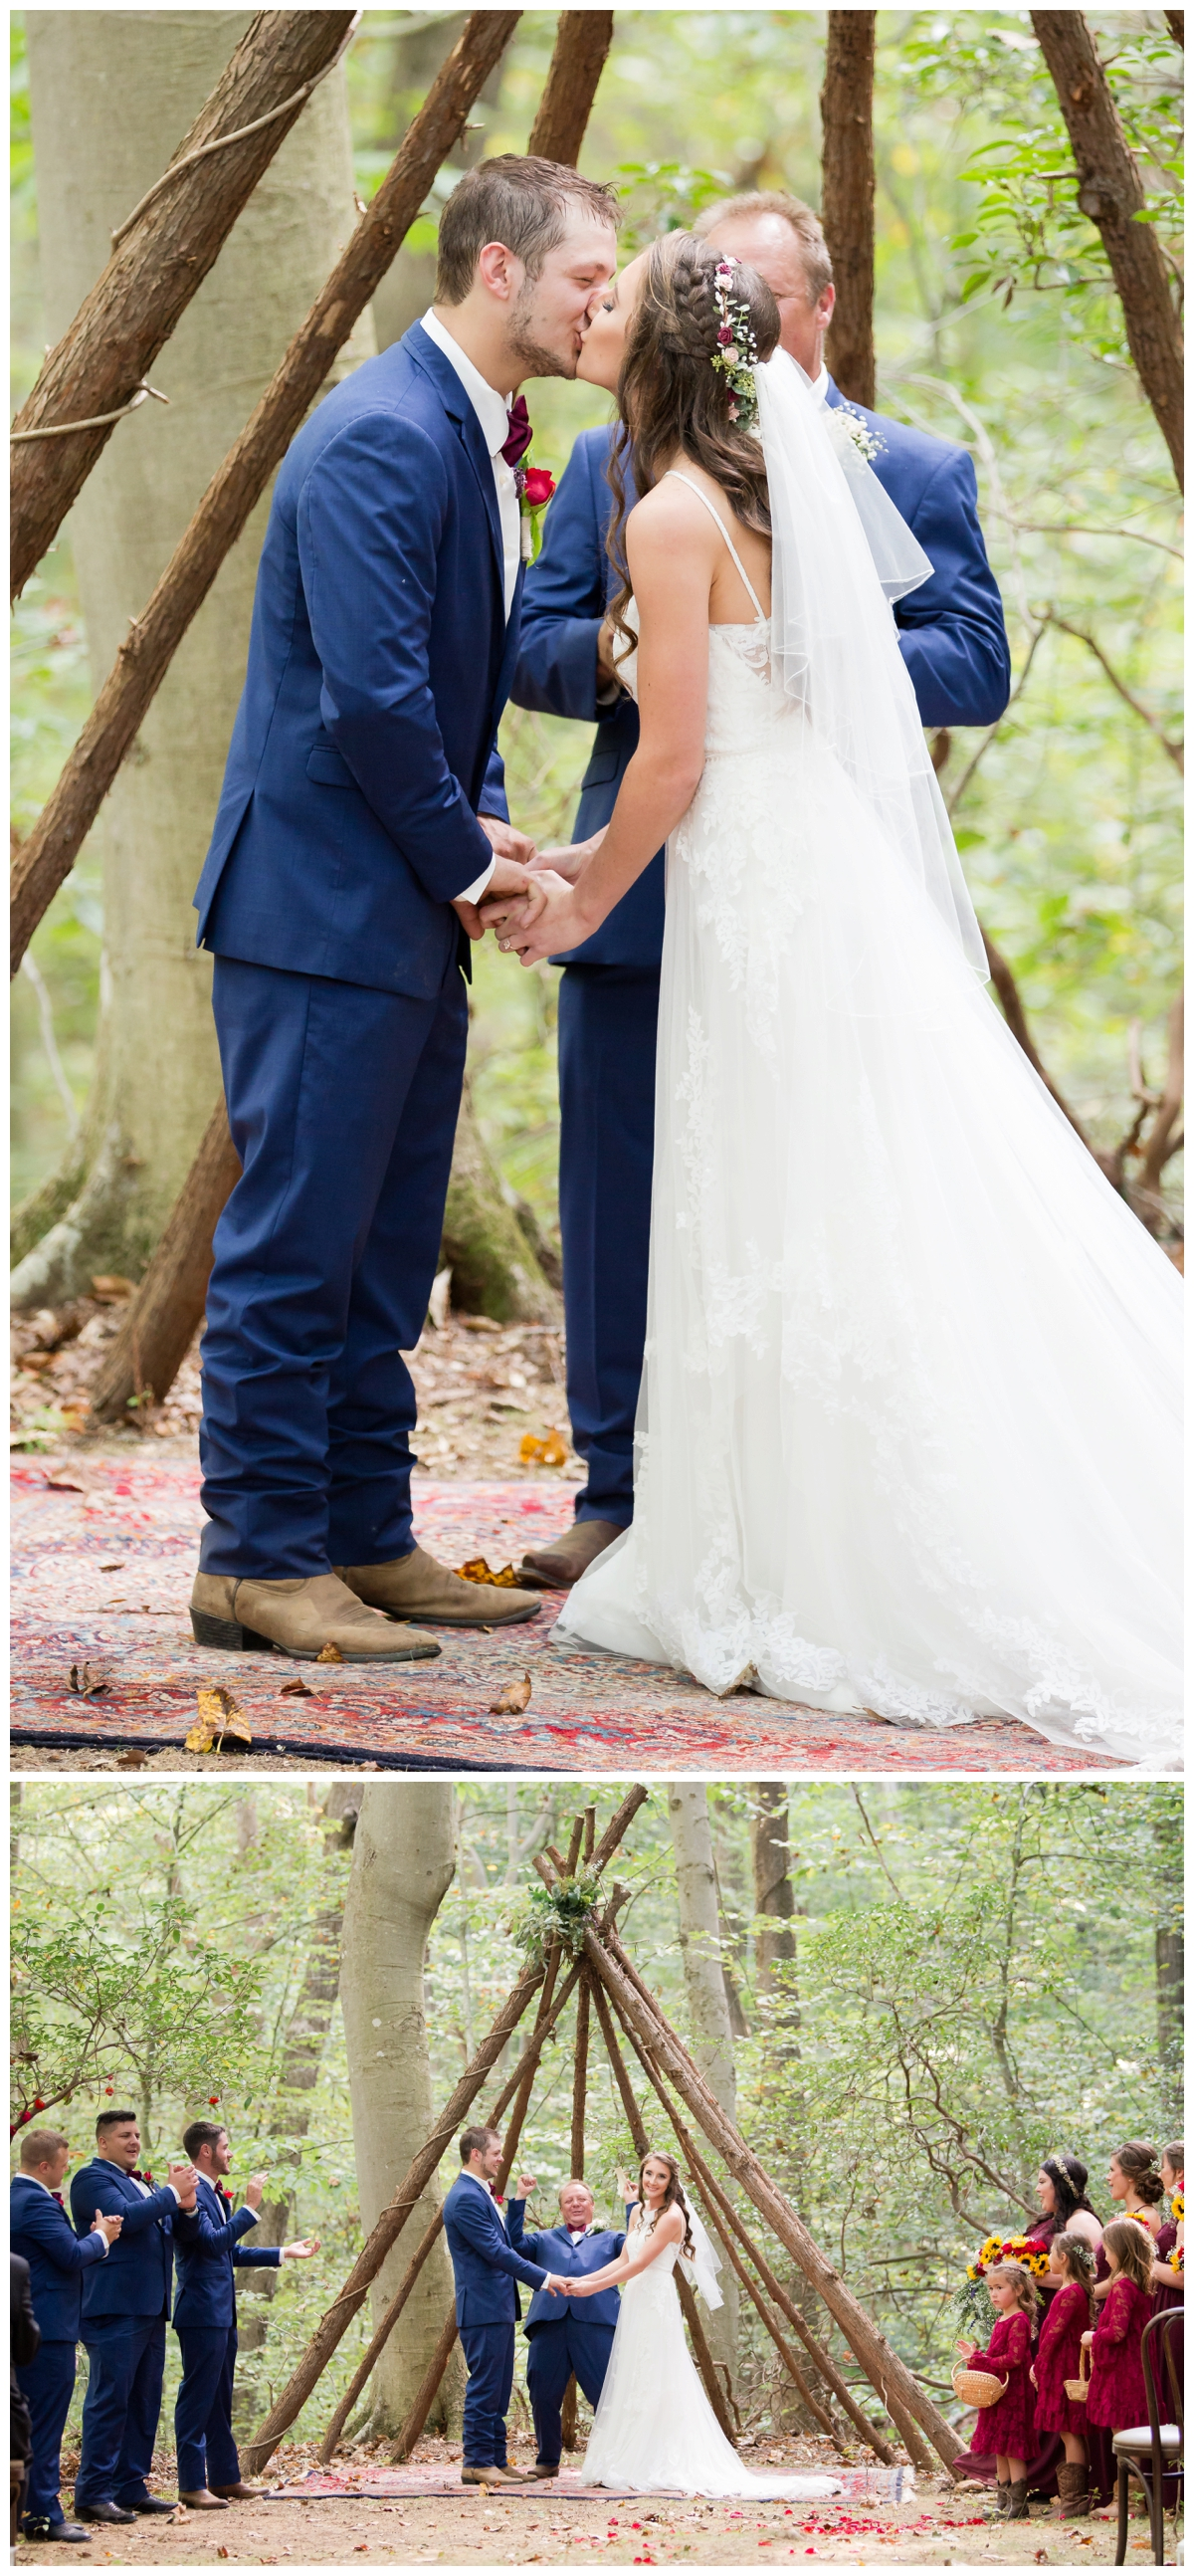 Ceremony photos at a shabby chic outdoor rustic wedding in the woods the kiss